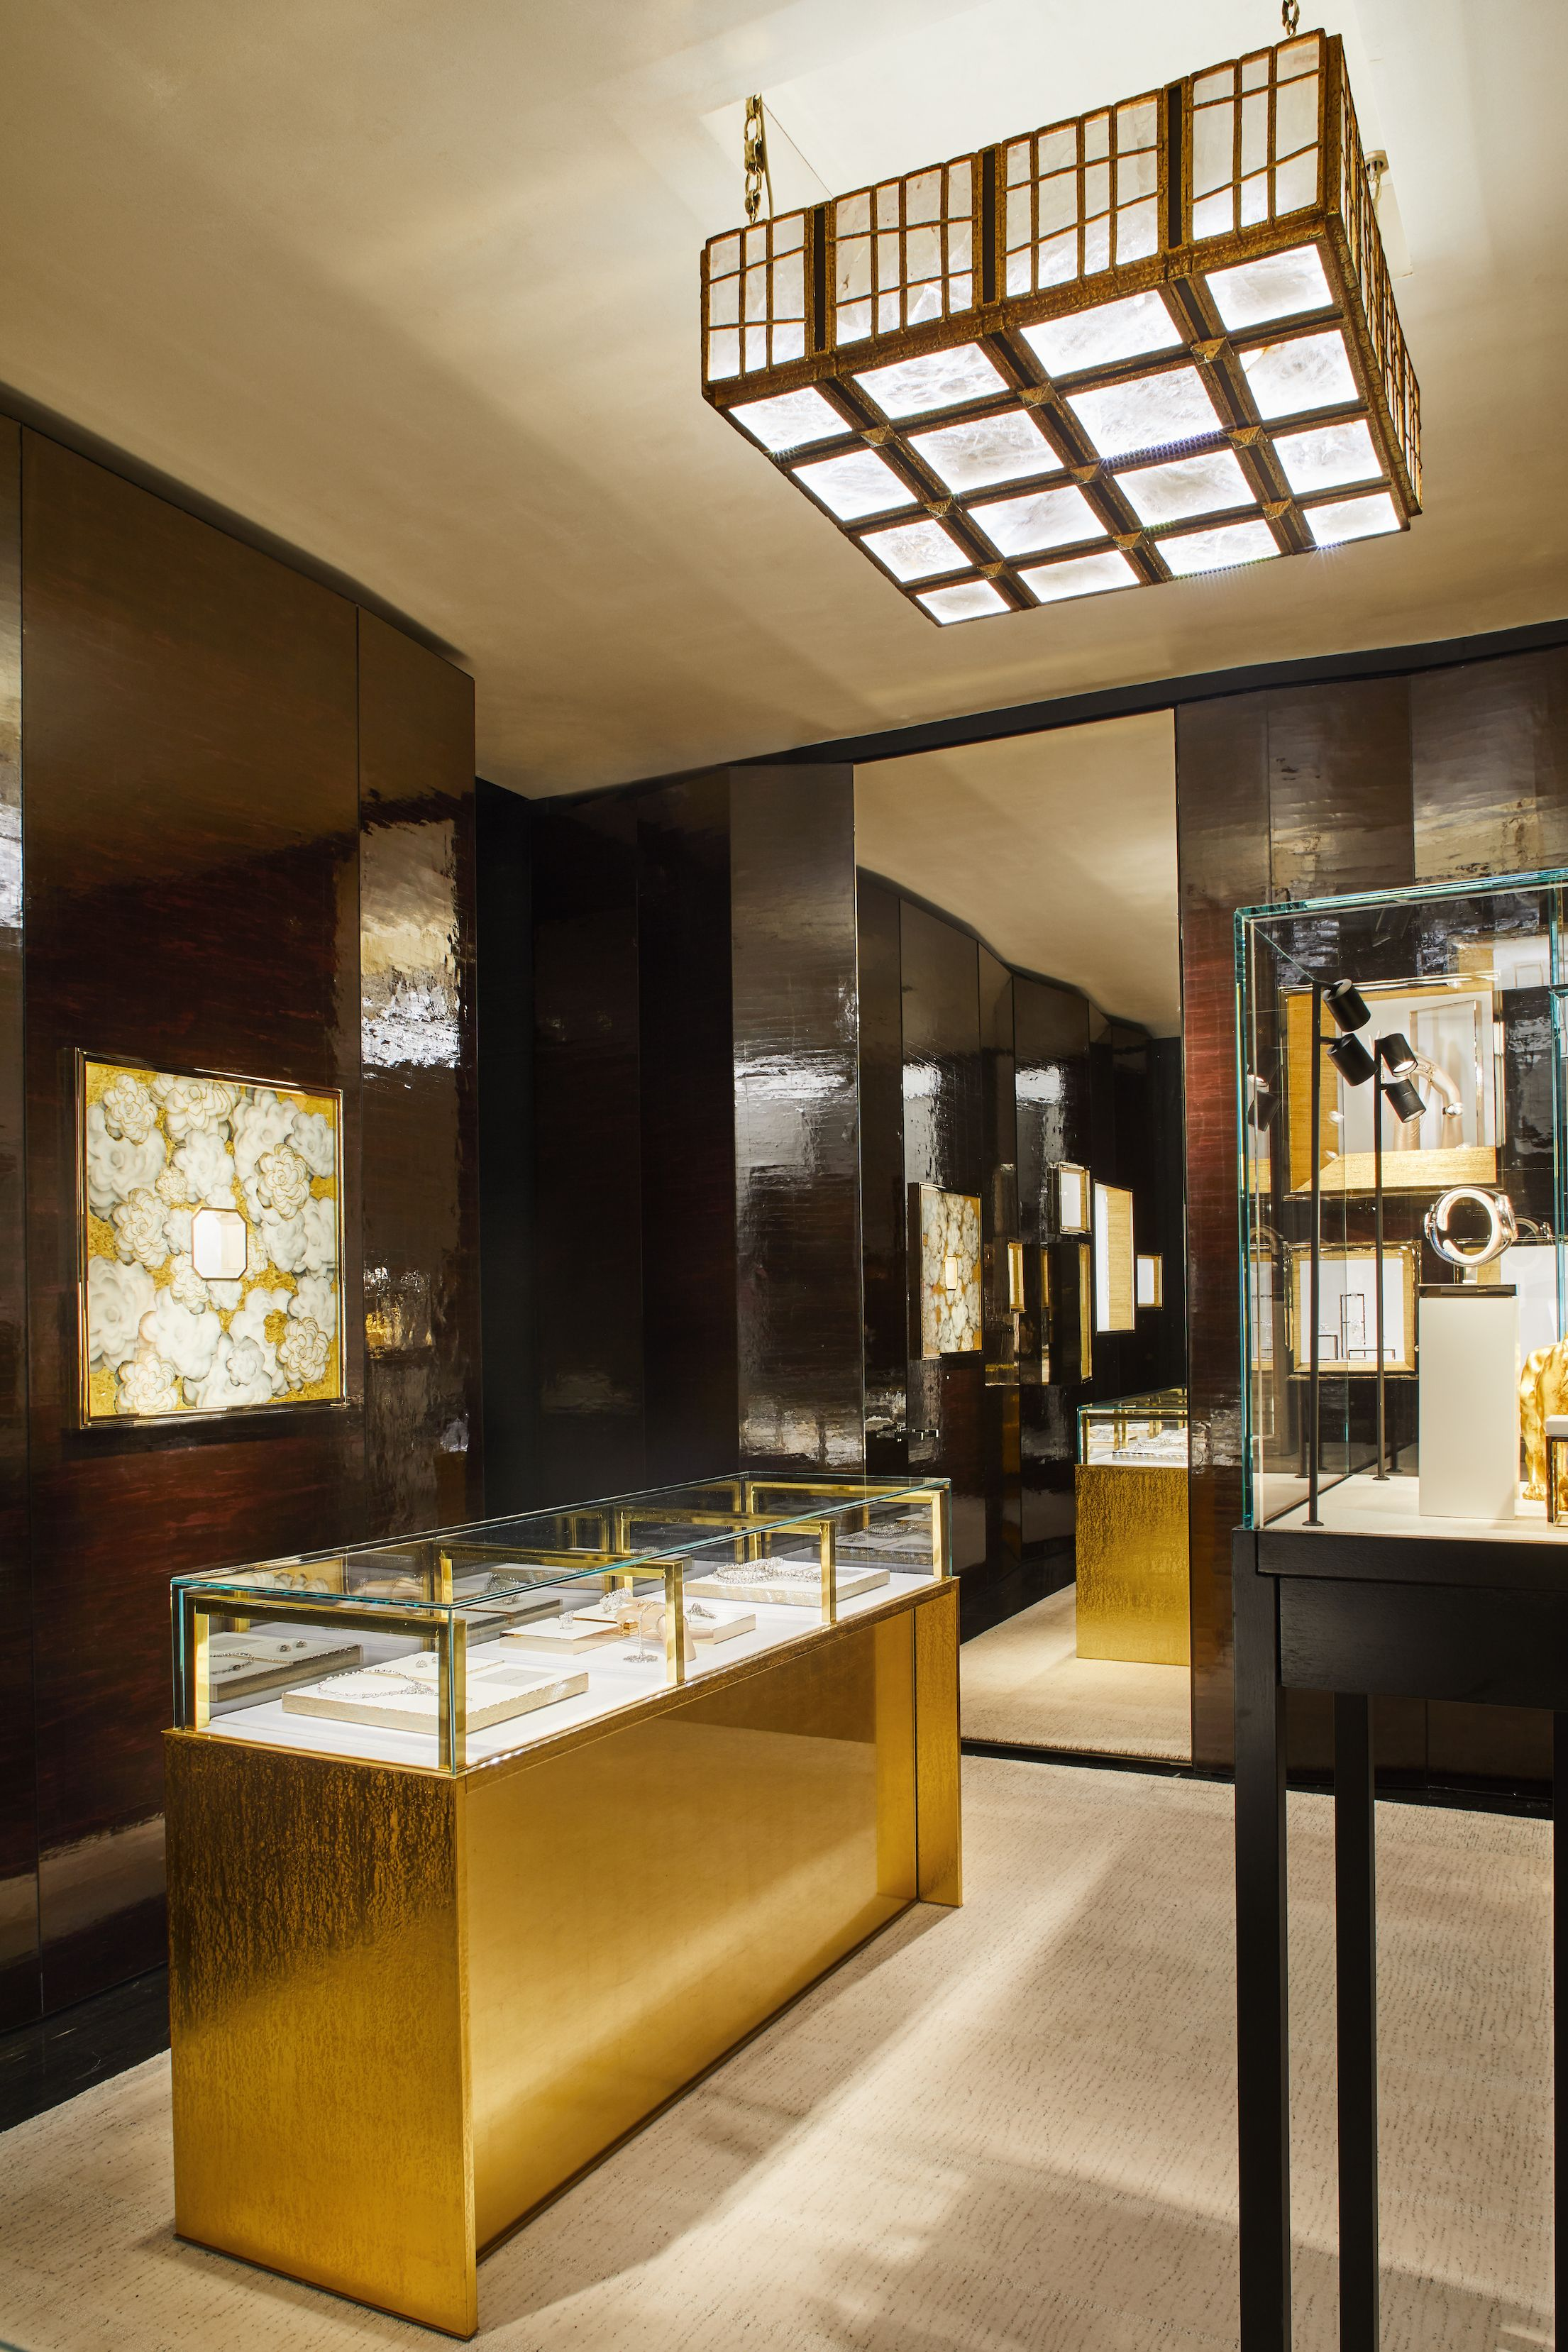 Marino chose gold leaf accents for the Watches and Fine Jewelry Salon as homage to the Coromandel screens that were in Gabrielle Chanel's Paris apartment on the rue Cambon.